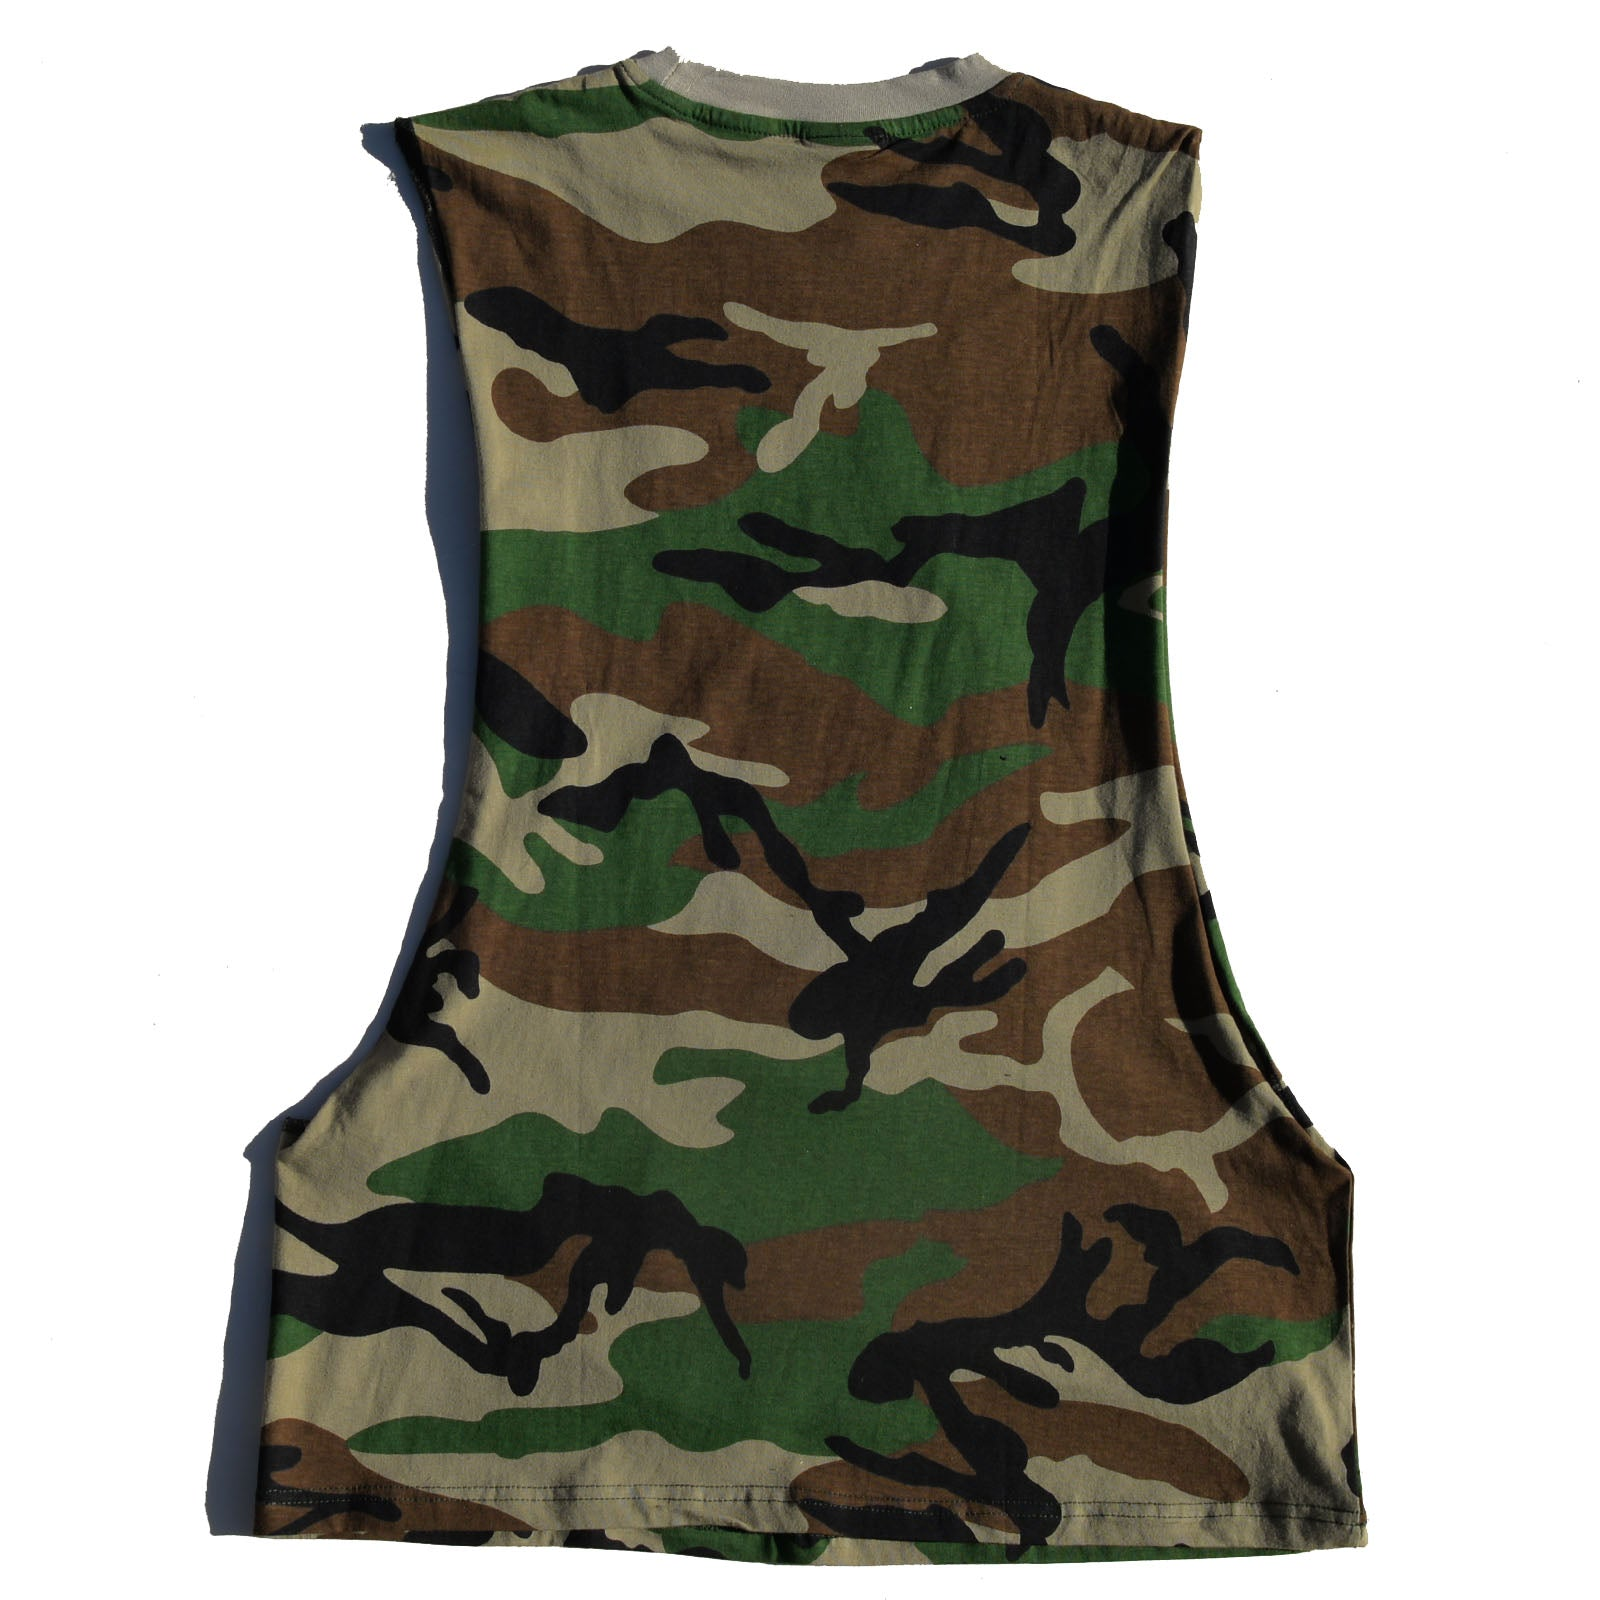 "Dextrose Bowl Cut ""Brown"" Cutoff Tee - Camouflauge"